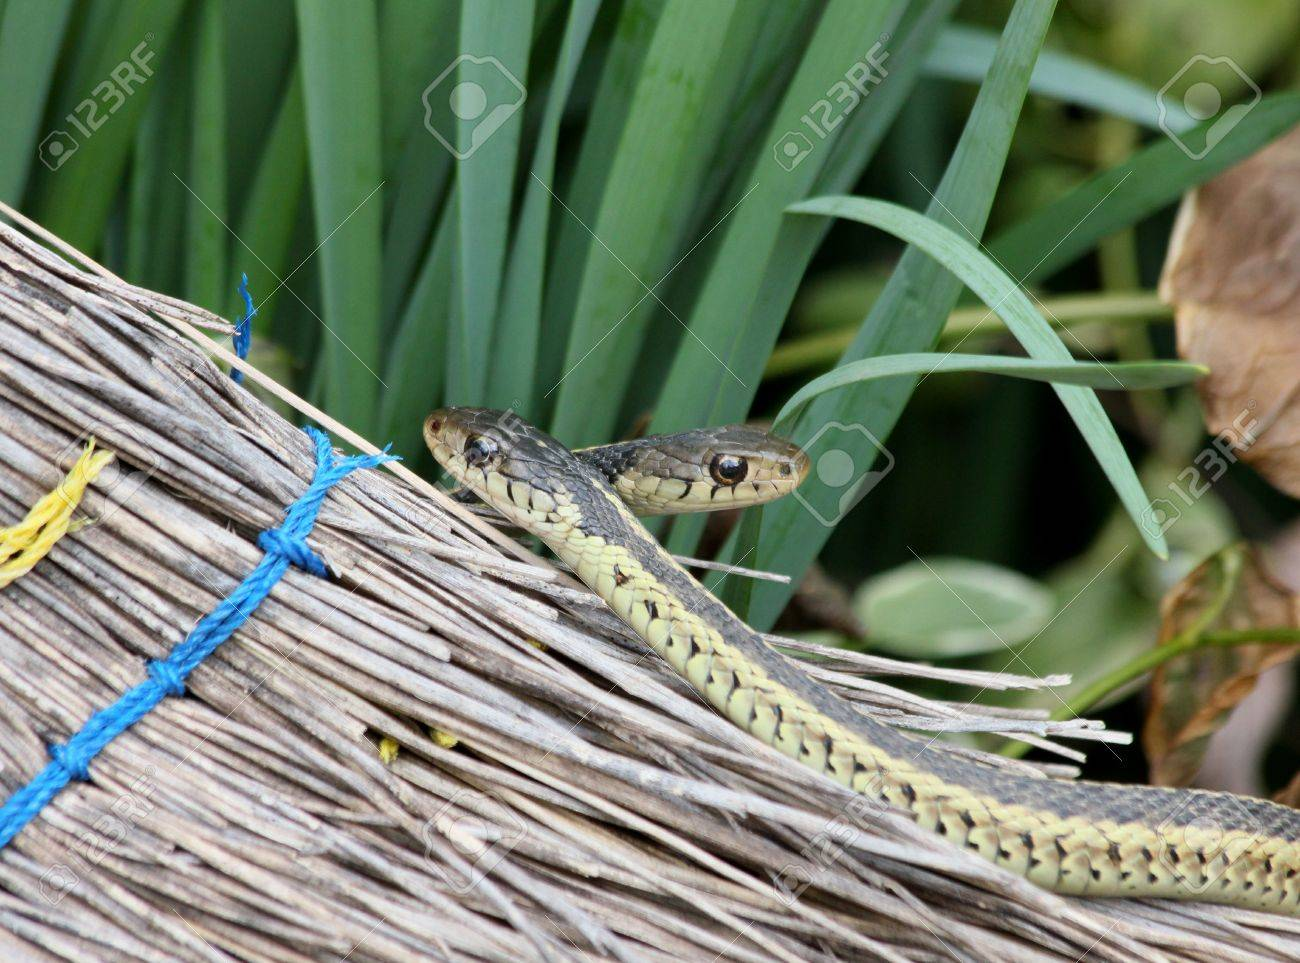 A pair of garter snakes crawling on an old broom. Stock Photo - 15506275